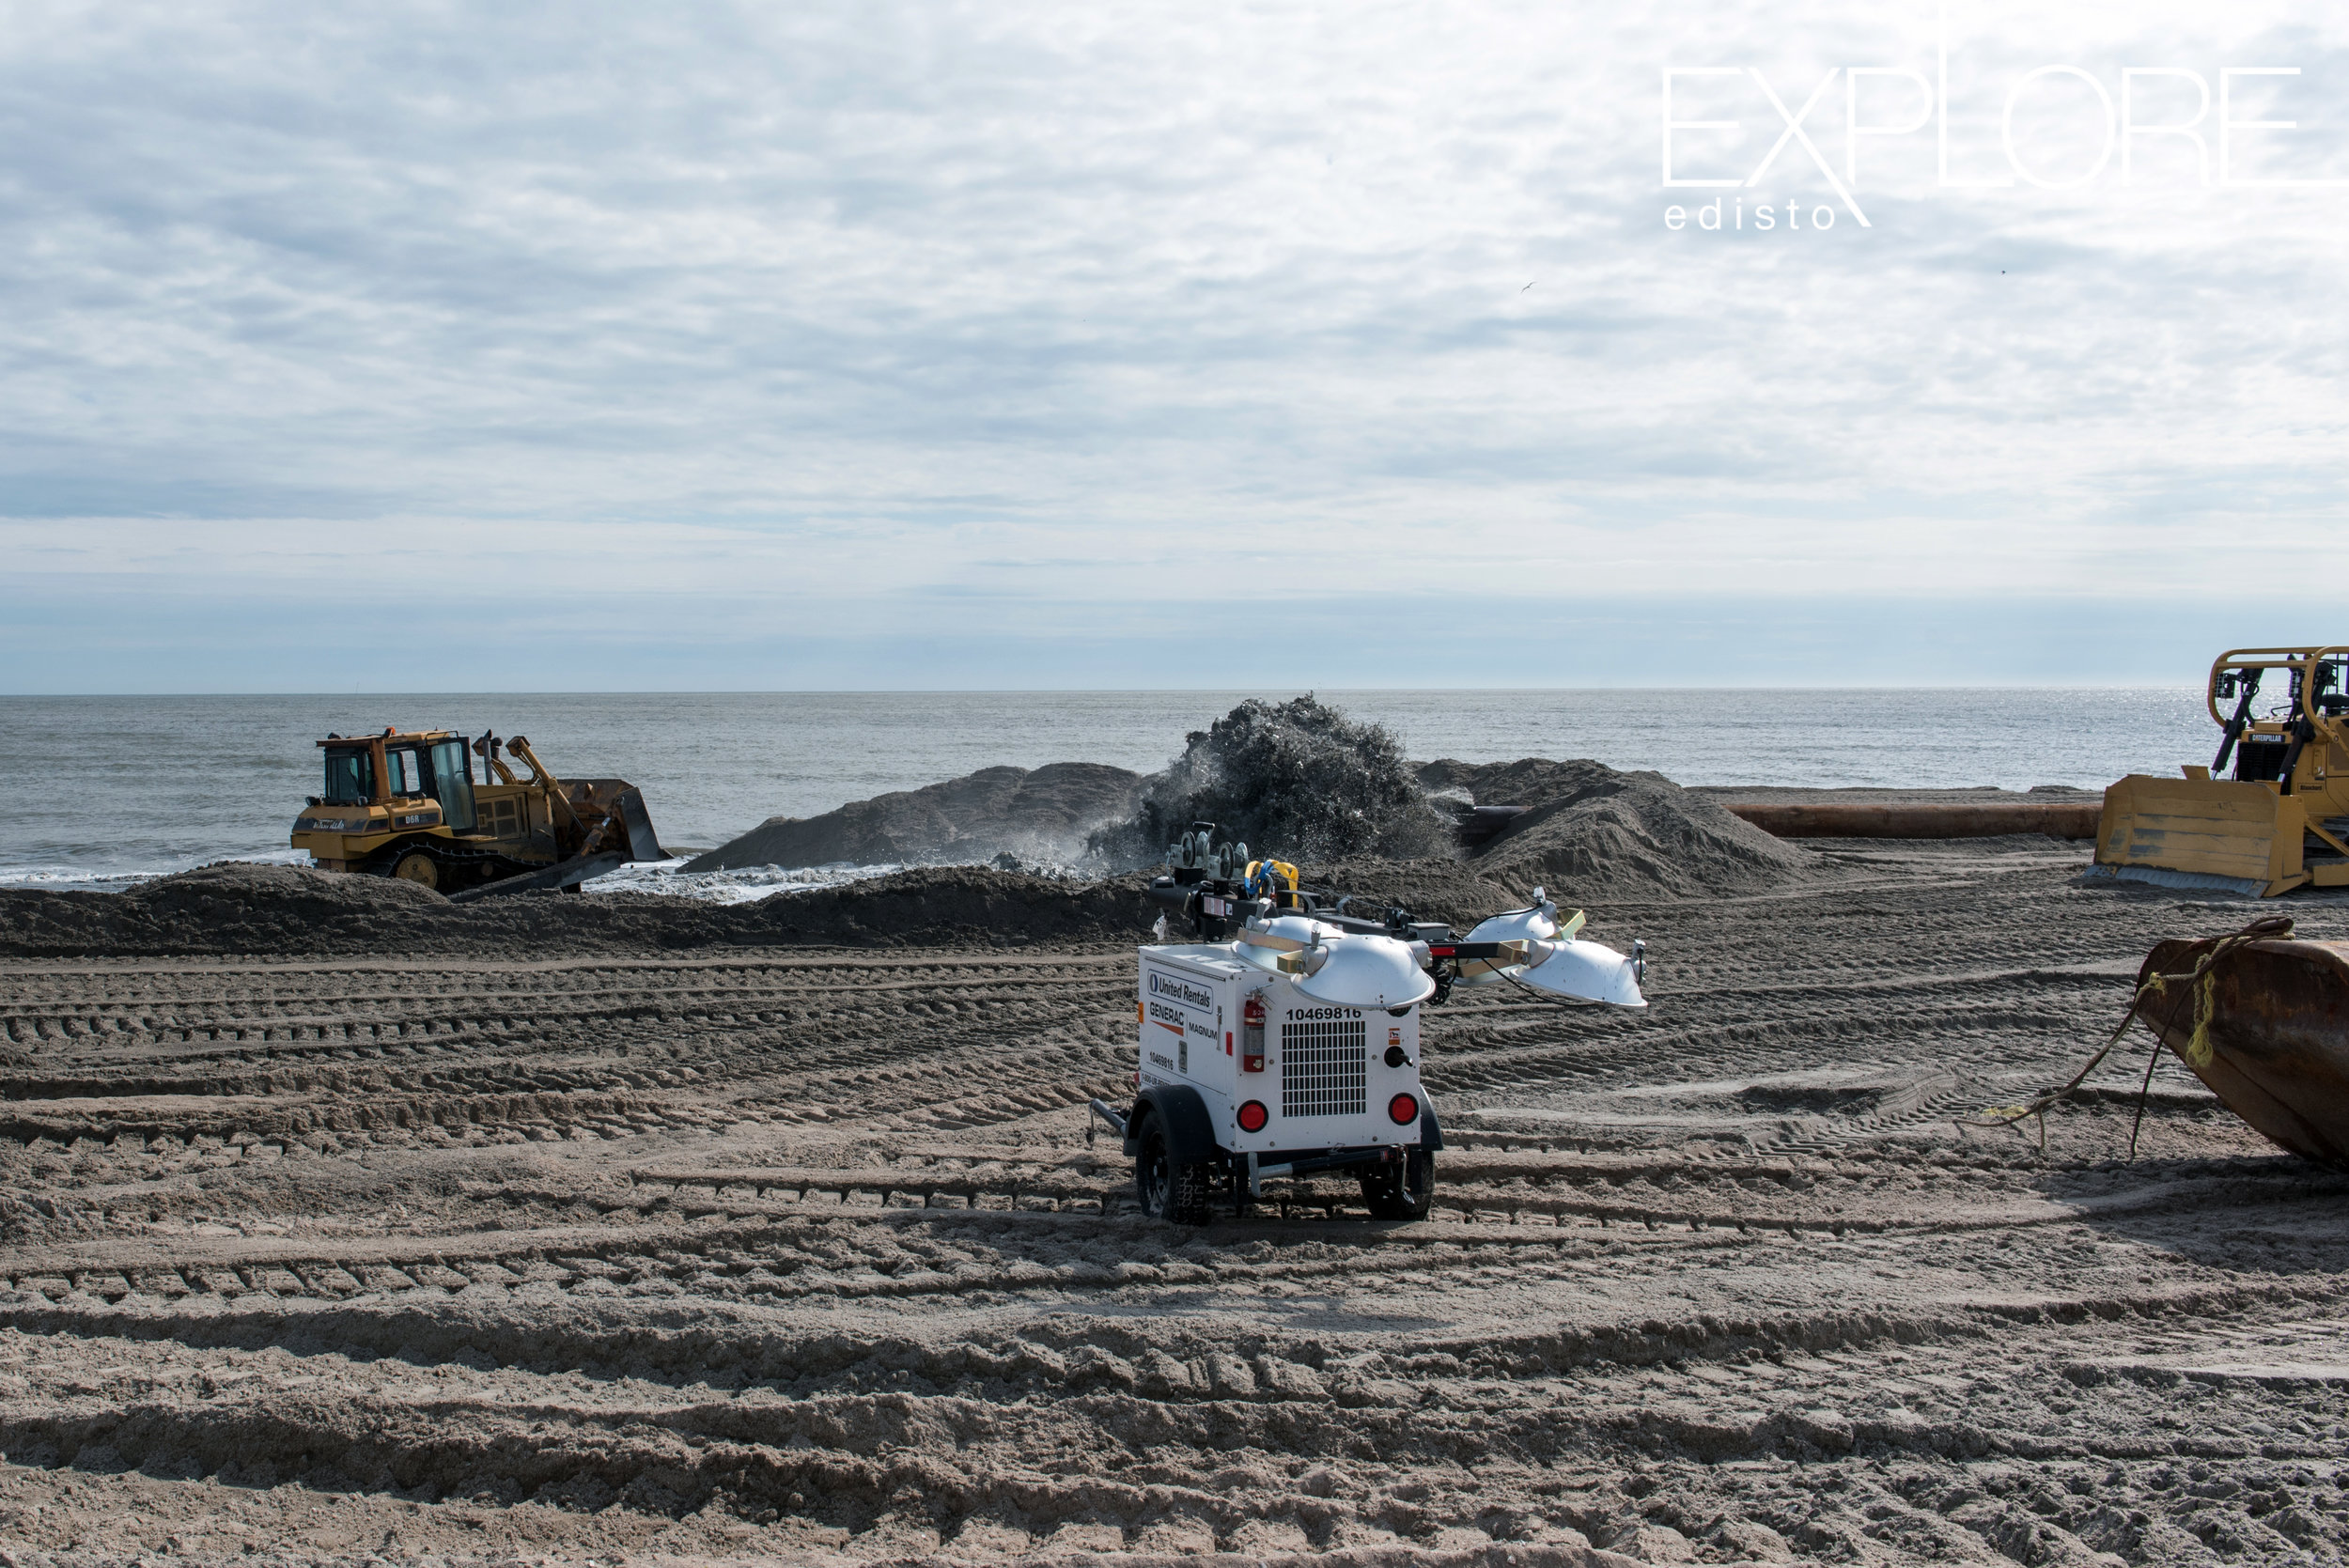 Tractors working and sand being pumped onto the beach from pipeline in ocean.